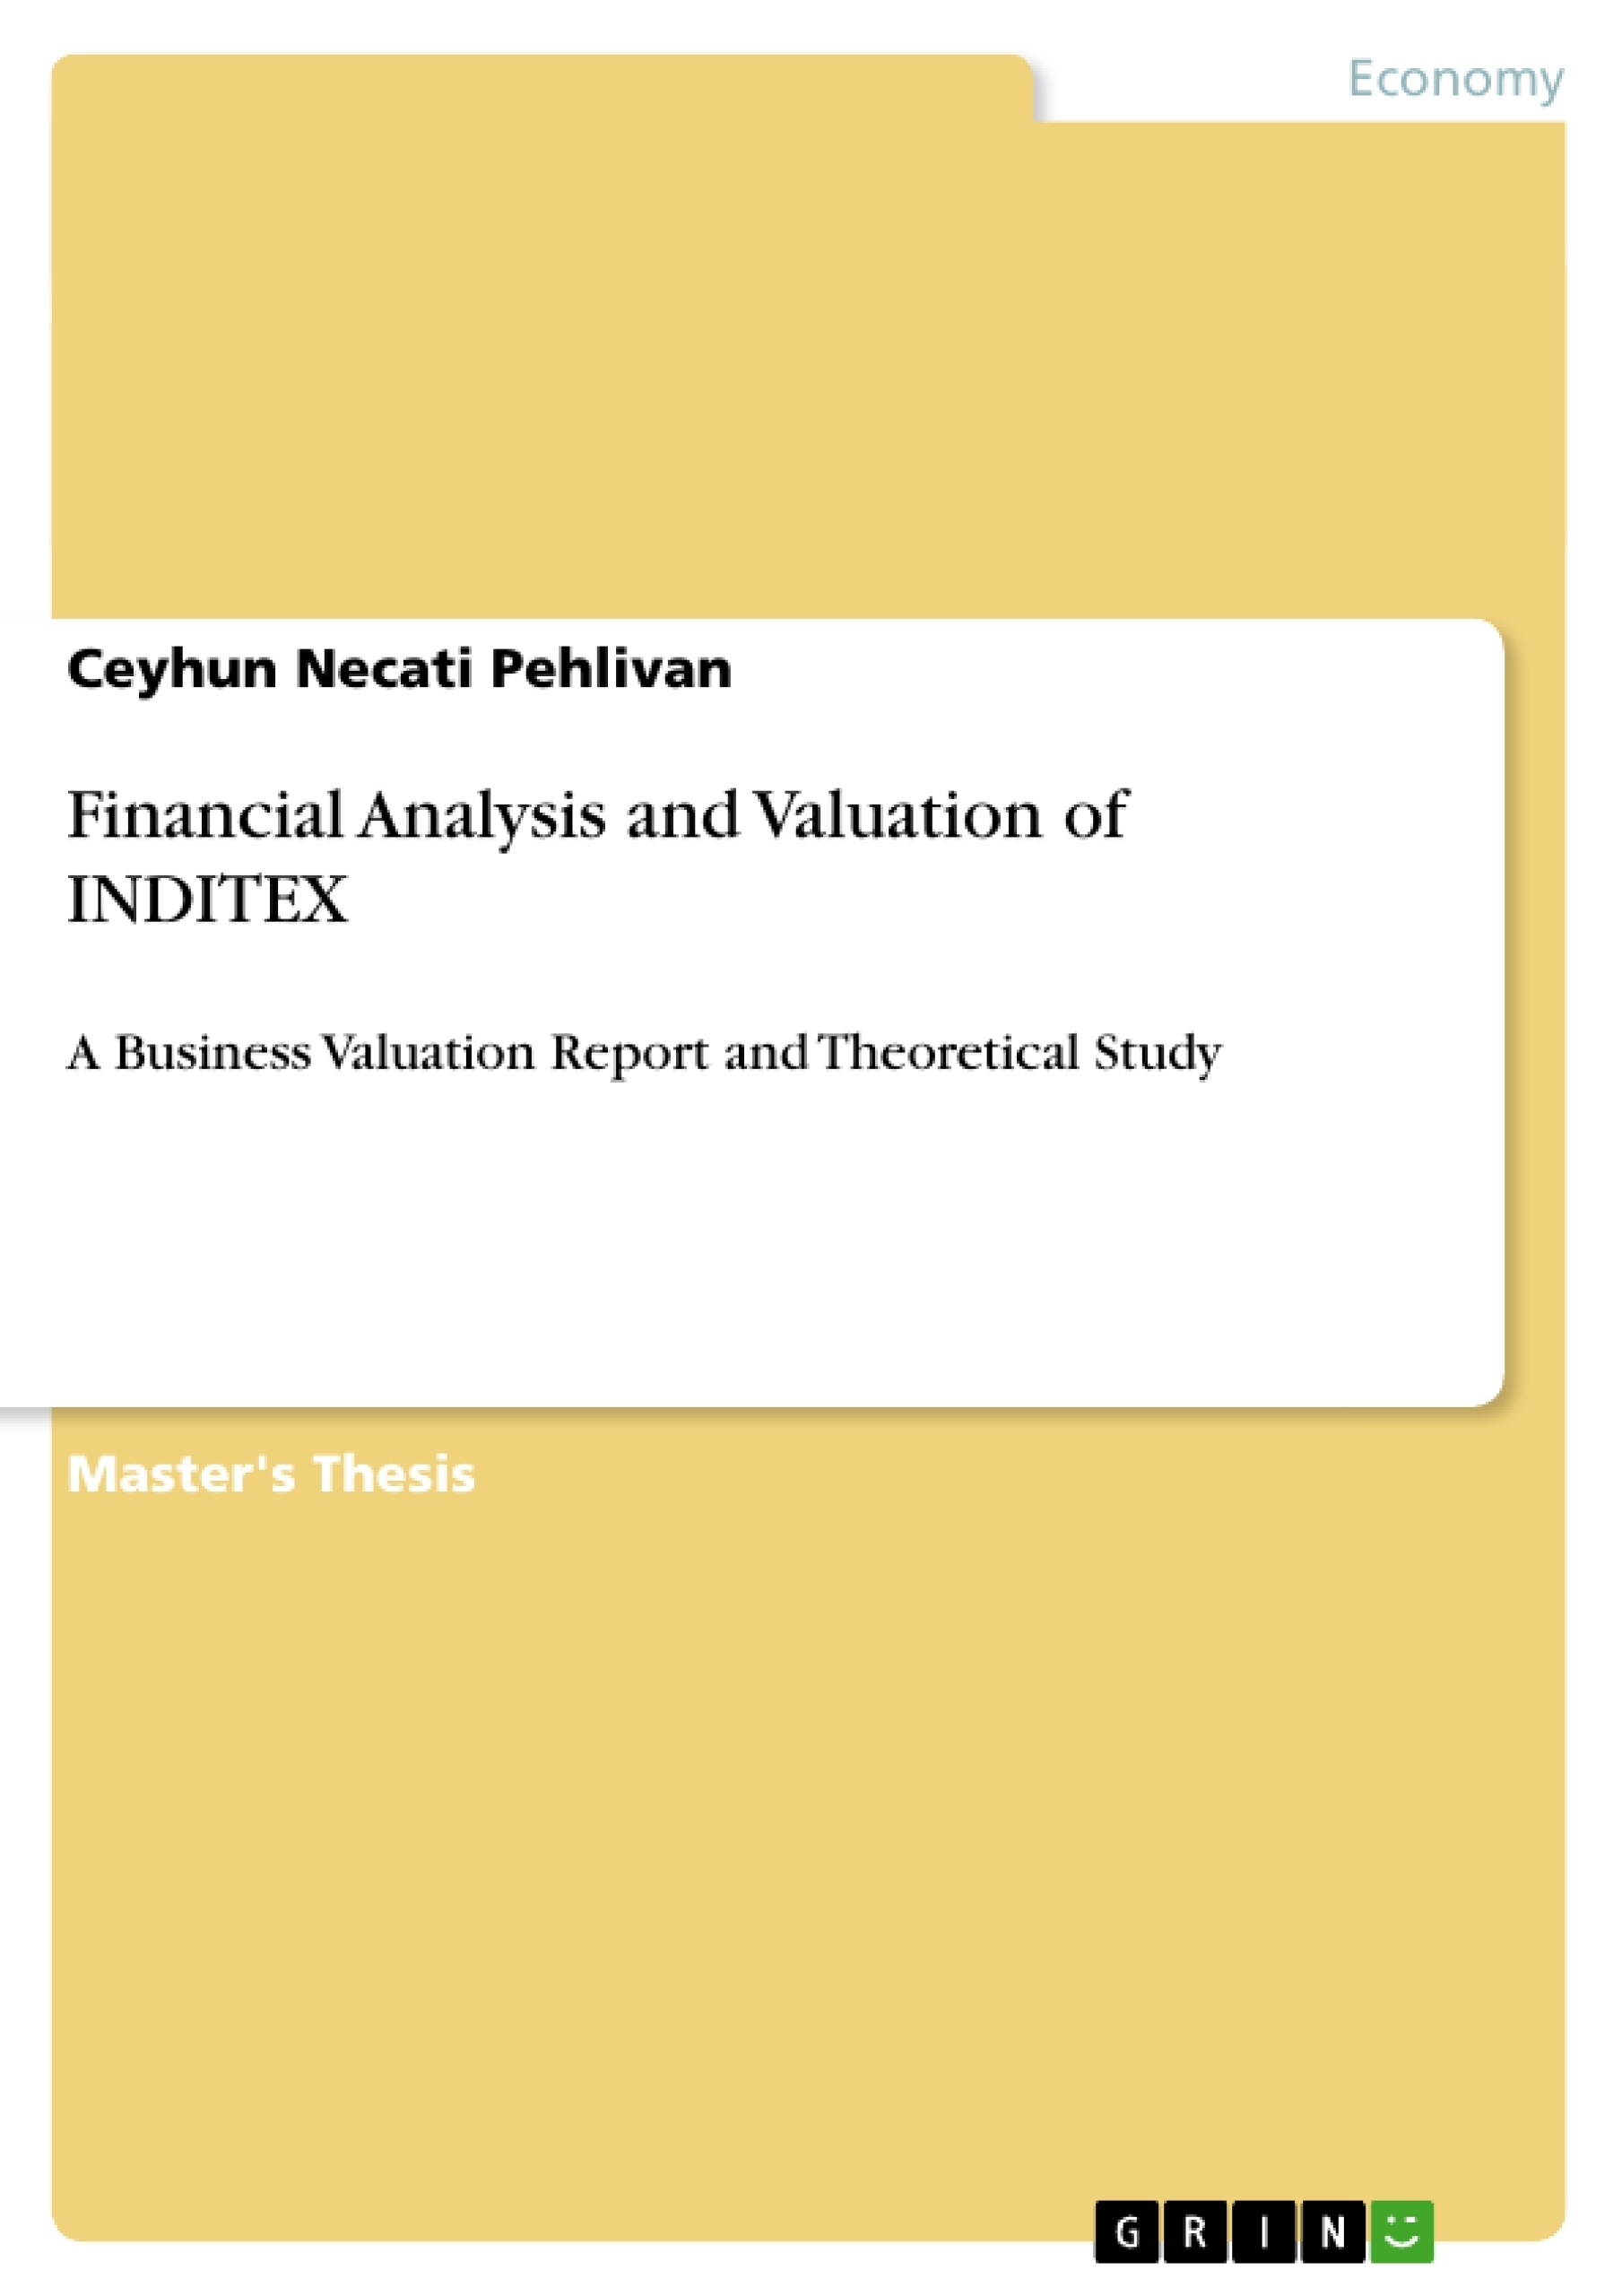 Title: Financial Analysis and Valuation of INDITEX